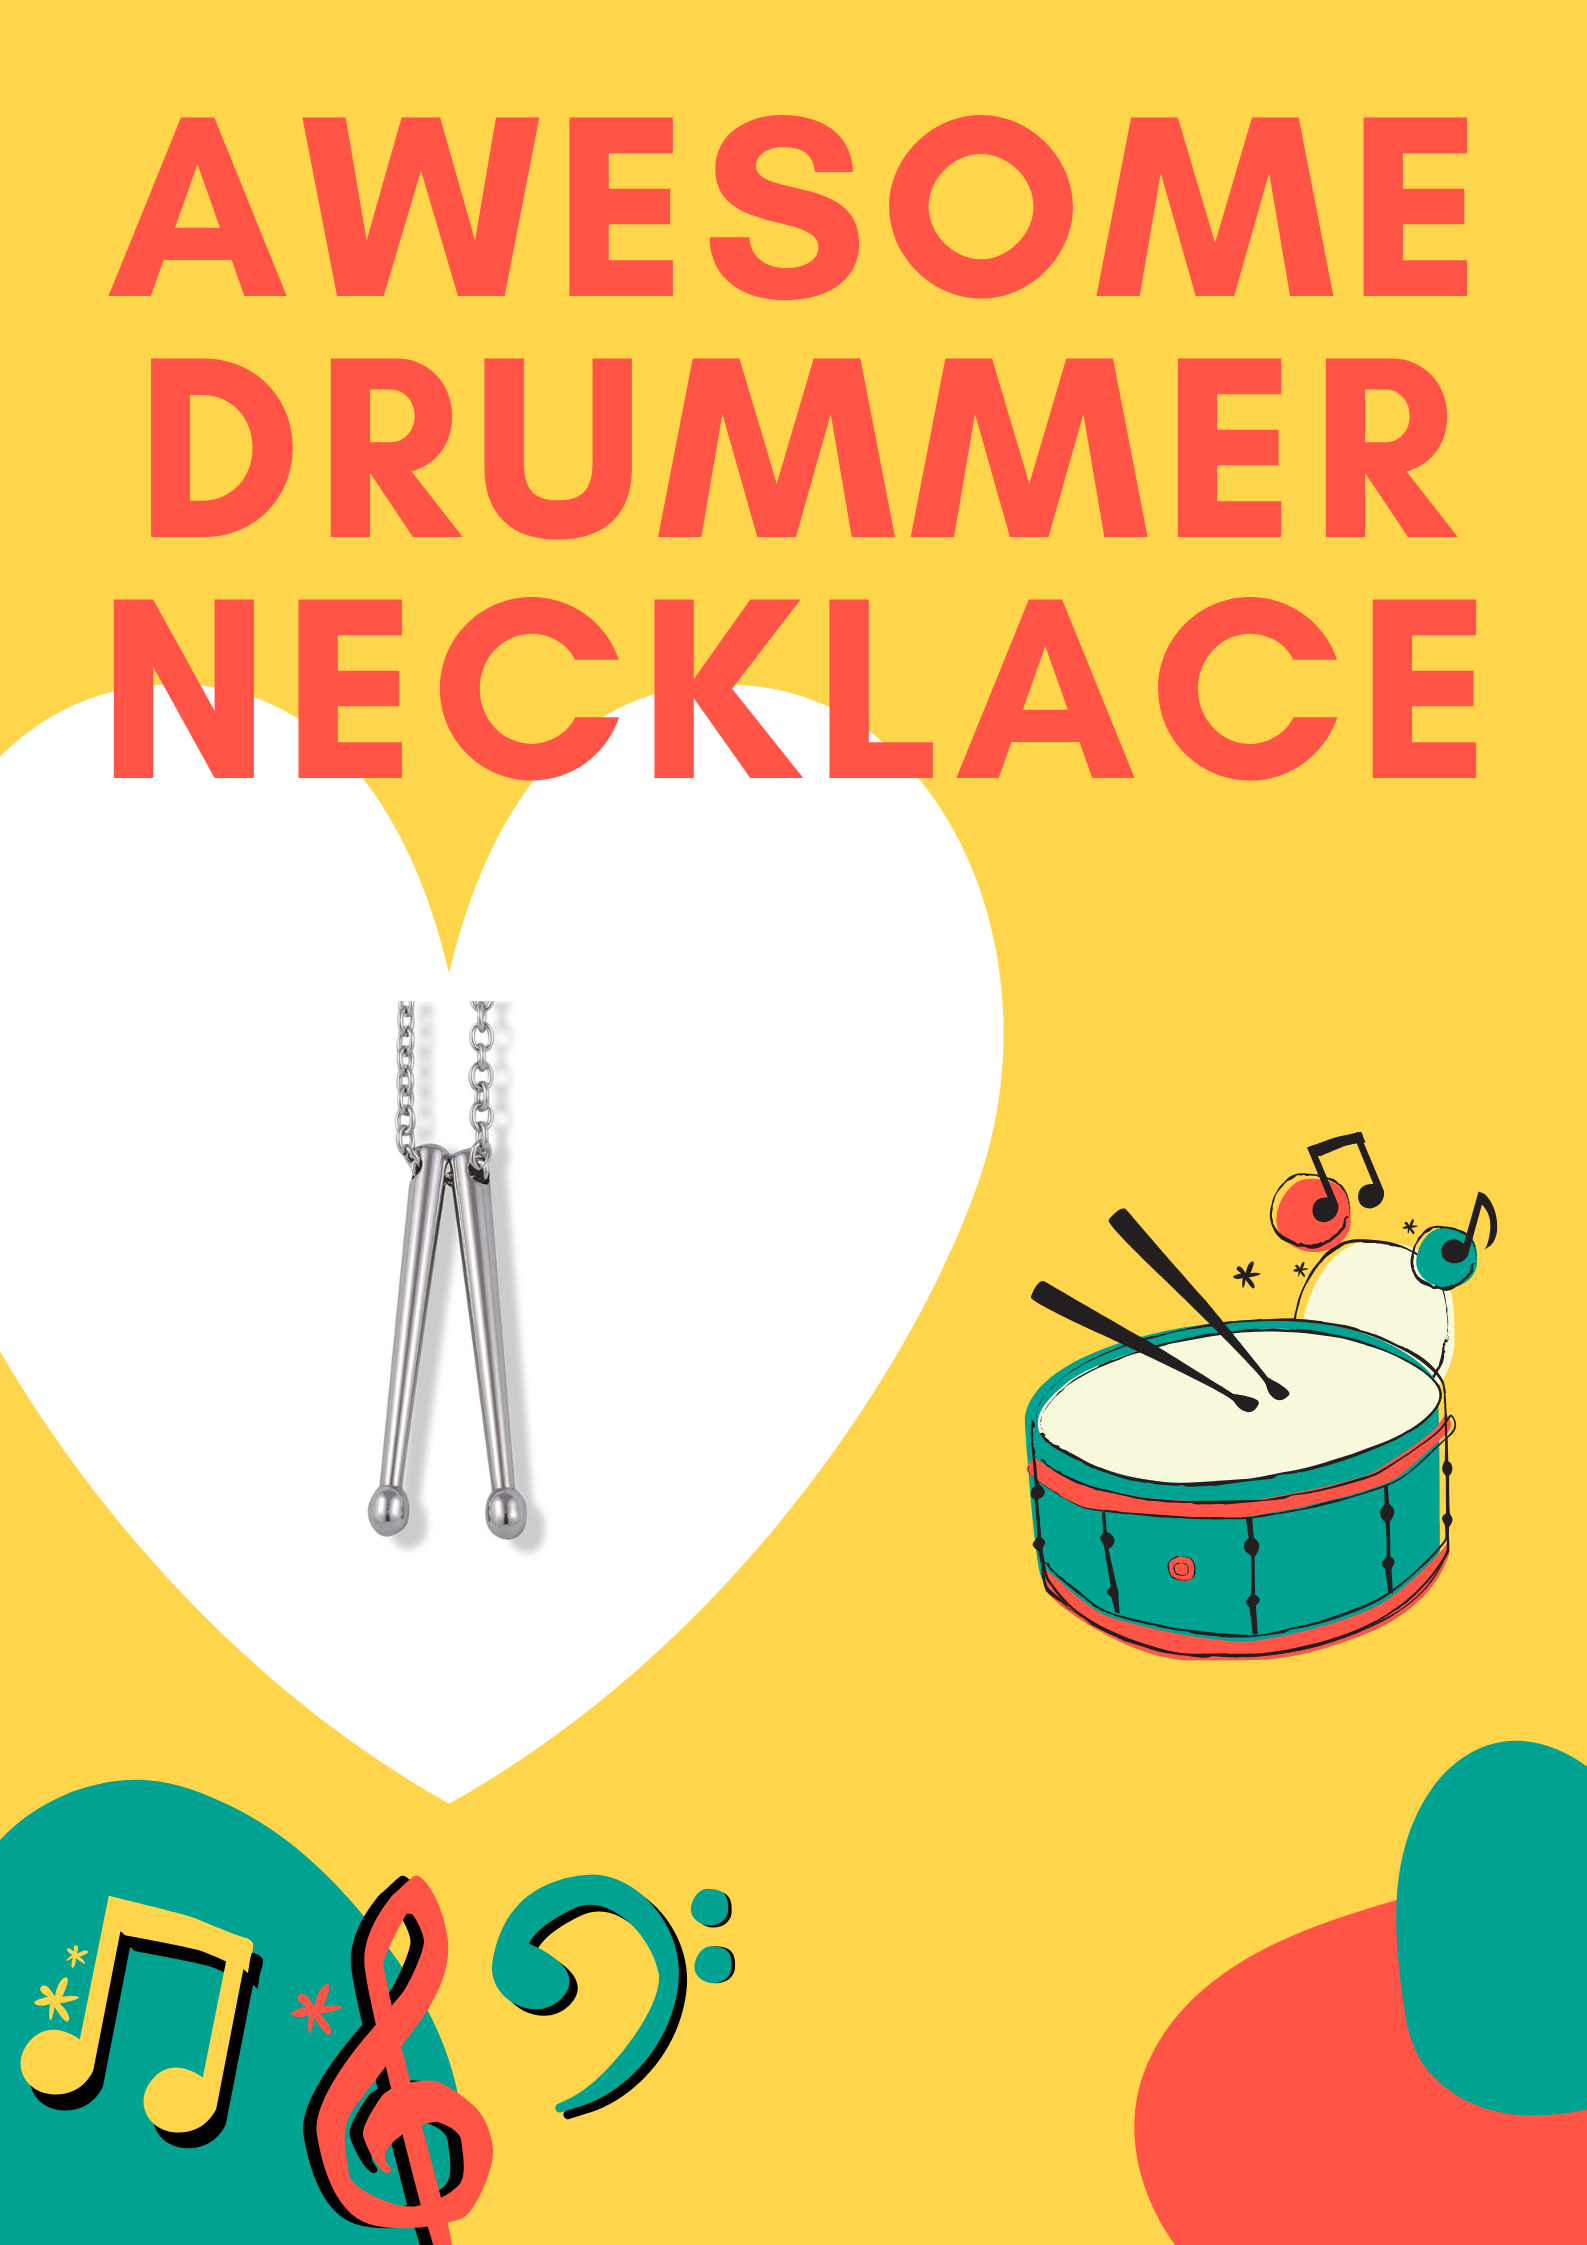 Drumstick Necklace for Men | [Free Shipping] Drummer Gifts Women Stainless Steel Pendant Necklace Charm Jewelry